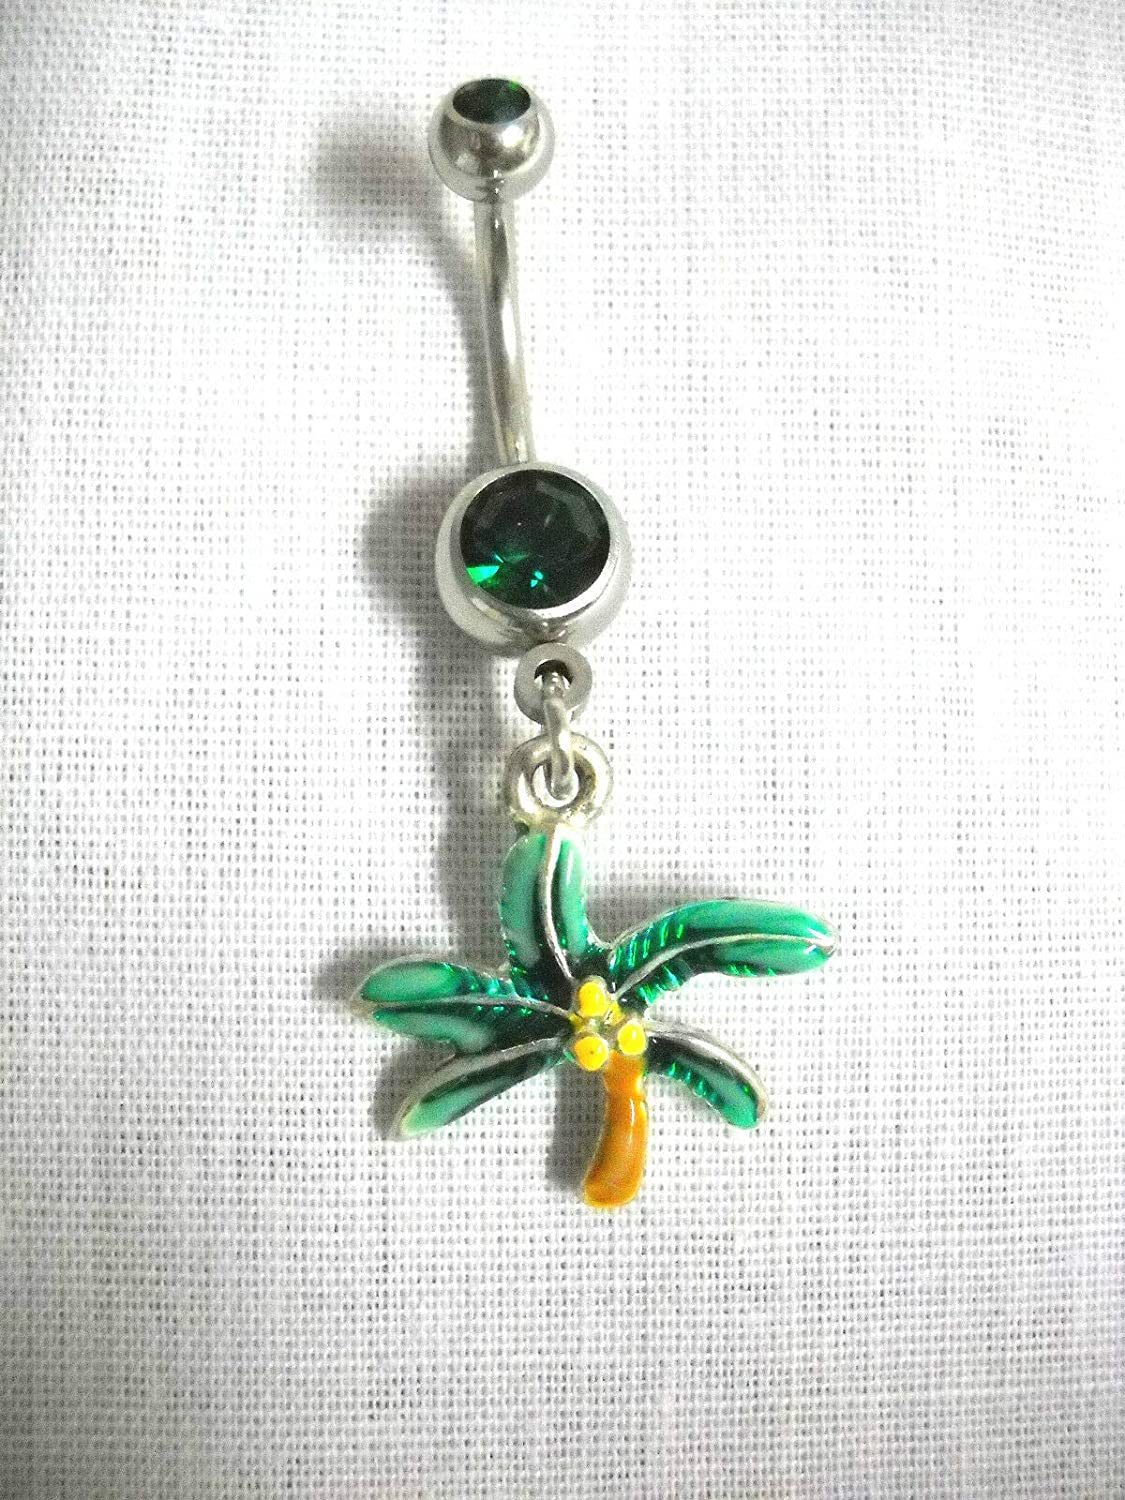 New Tropical Islands Coconut Palm Tree Dazzling 14g Emerald Green Belly Ring KEZ-3517